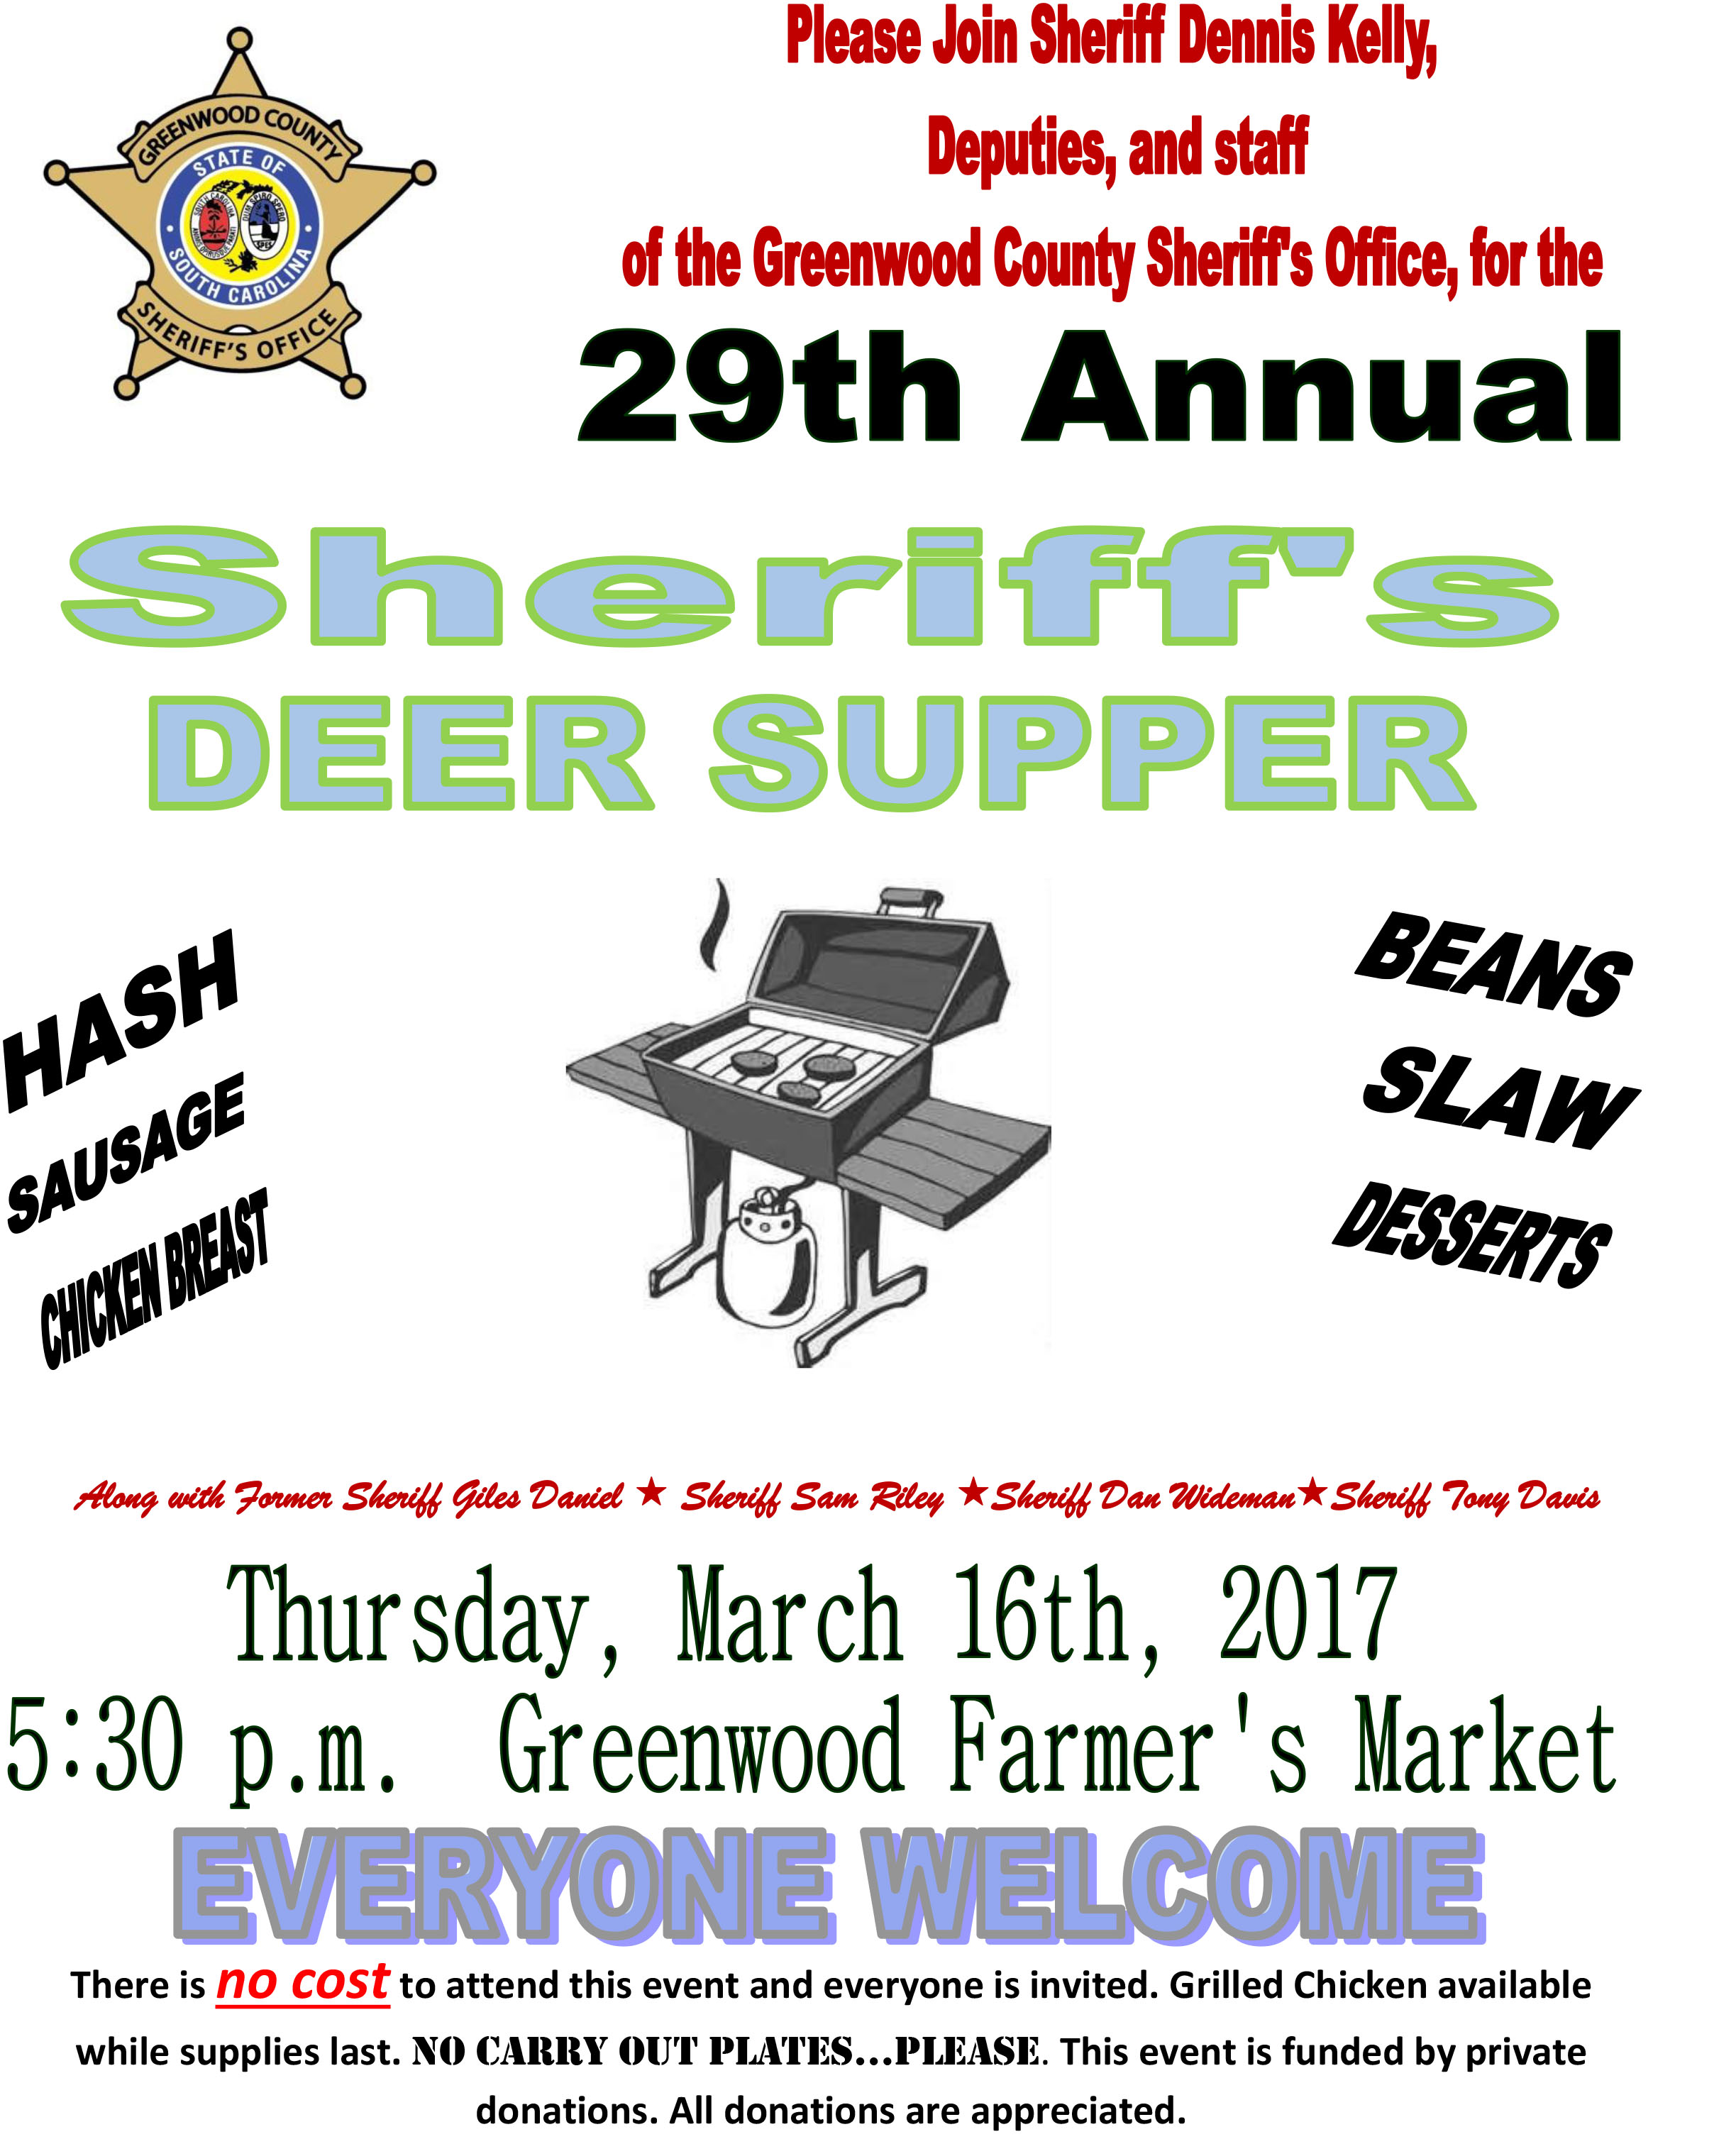 Sheriff's Deer Supper